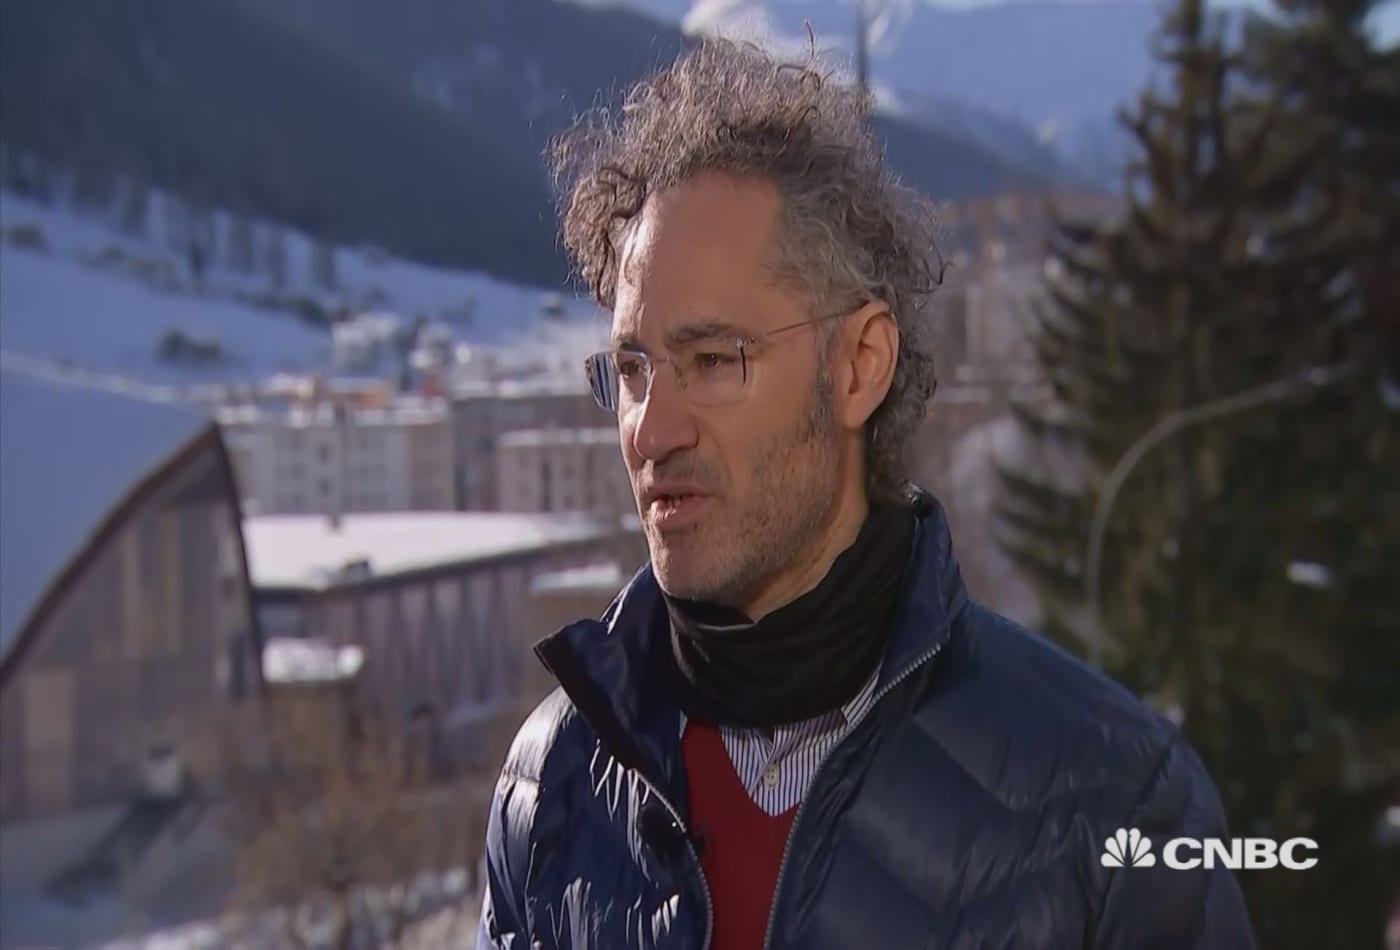 Watch CNBC's Full Interview with Palantir CEO Alex Karp at Davos